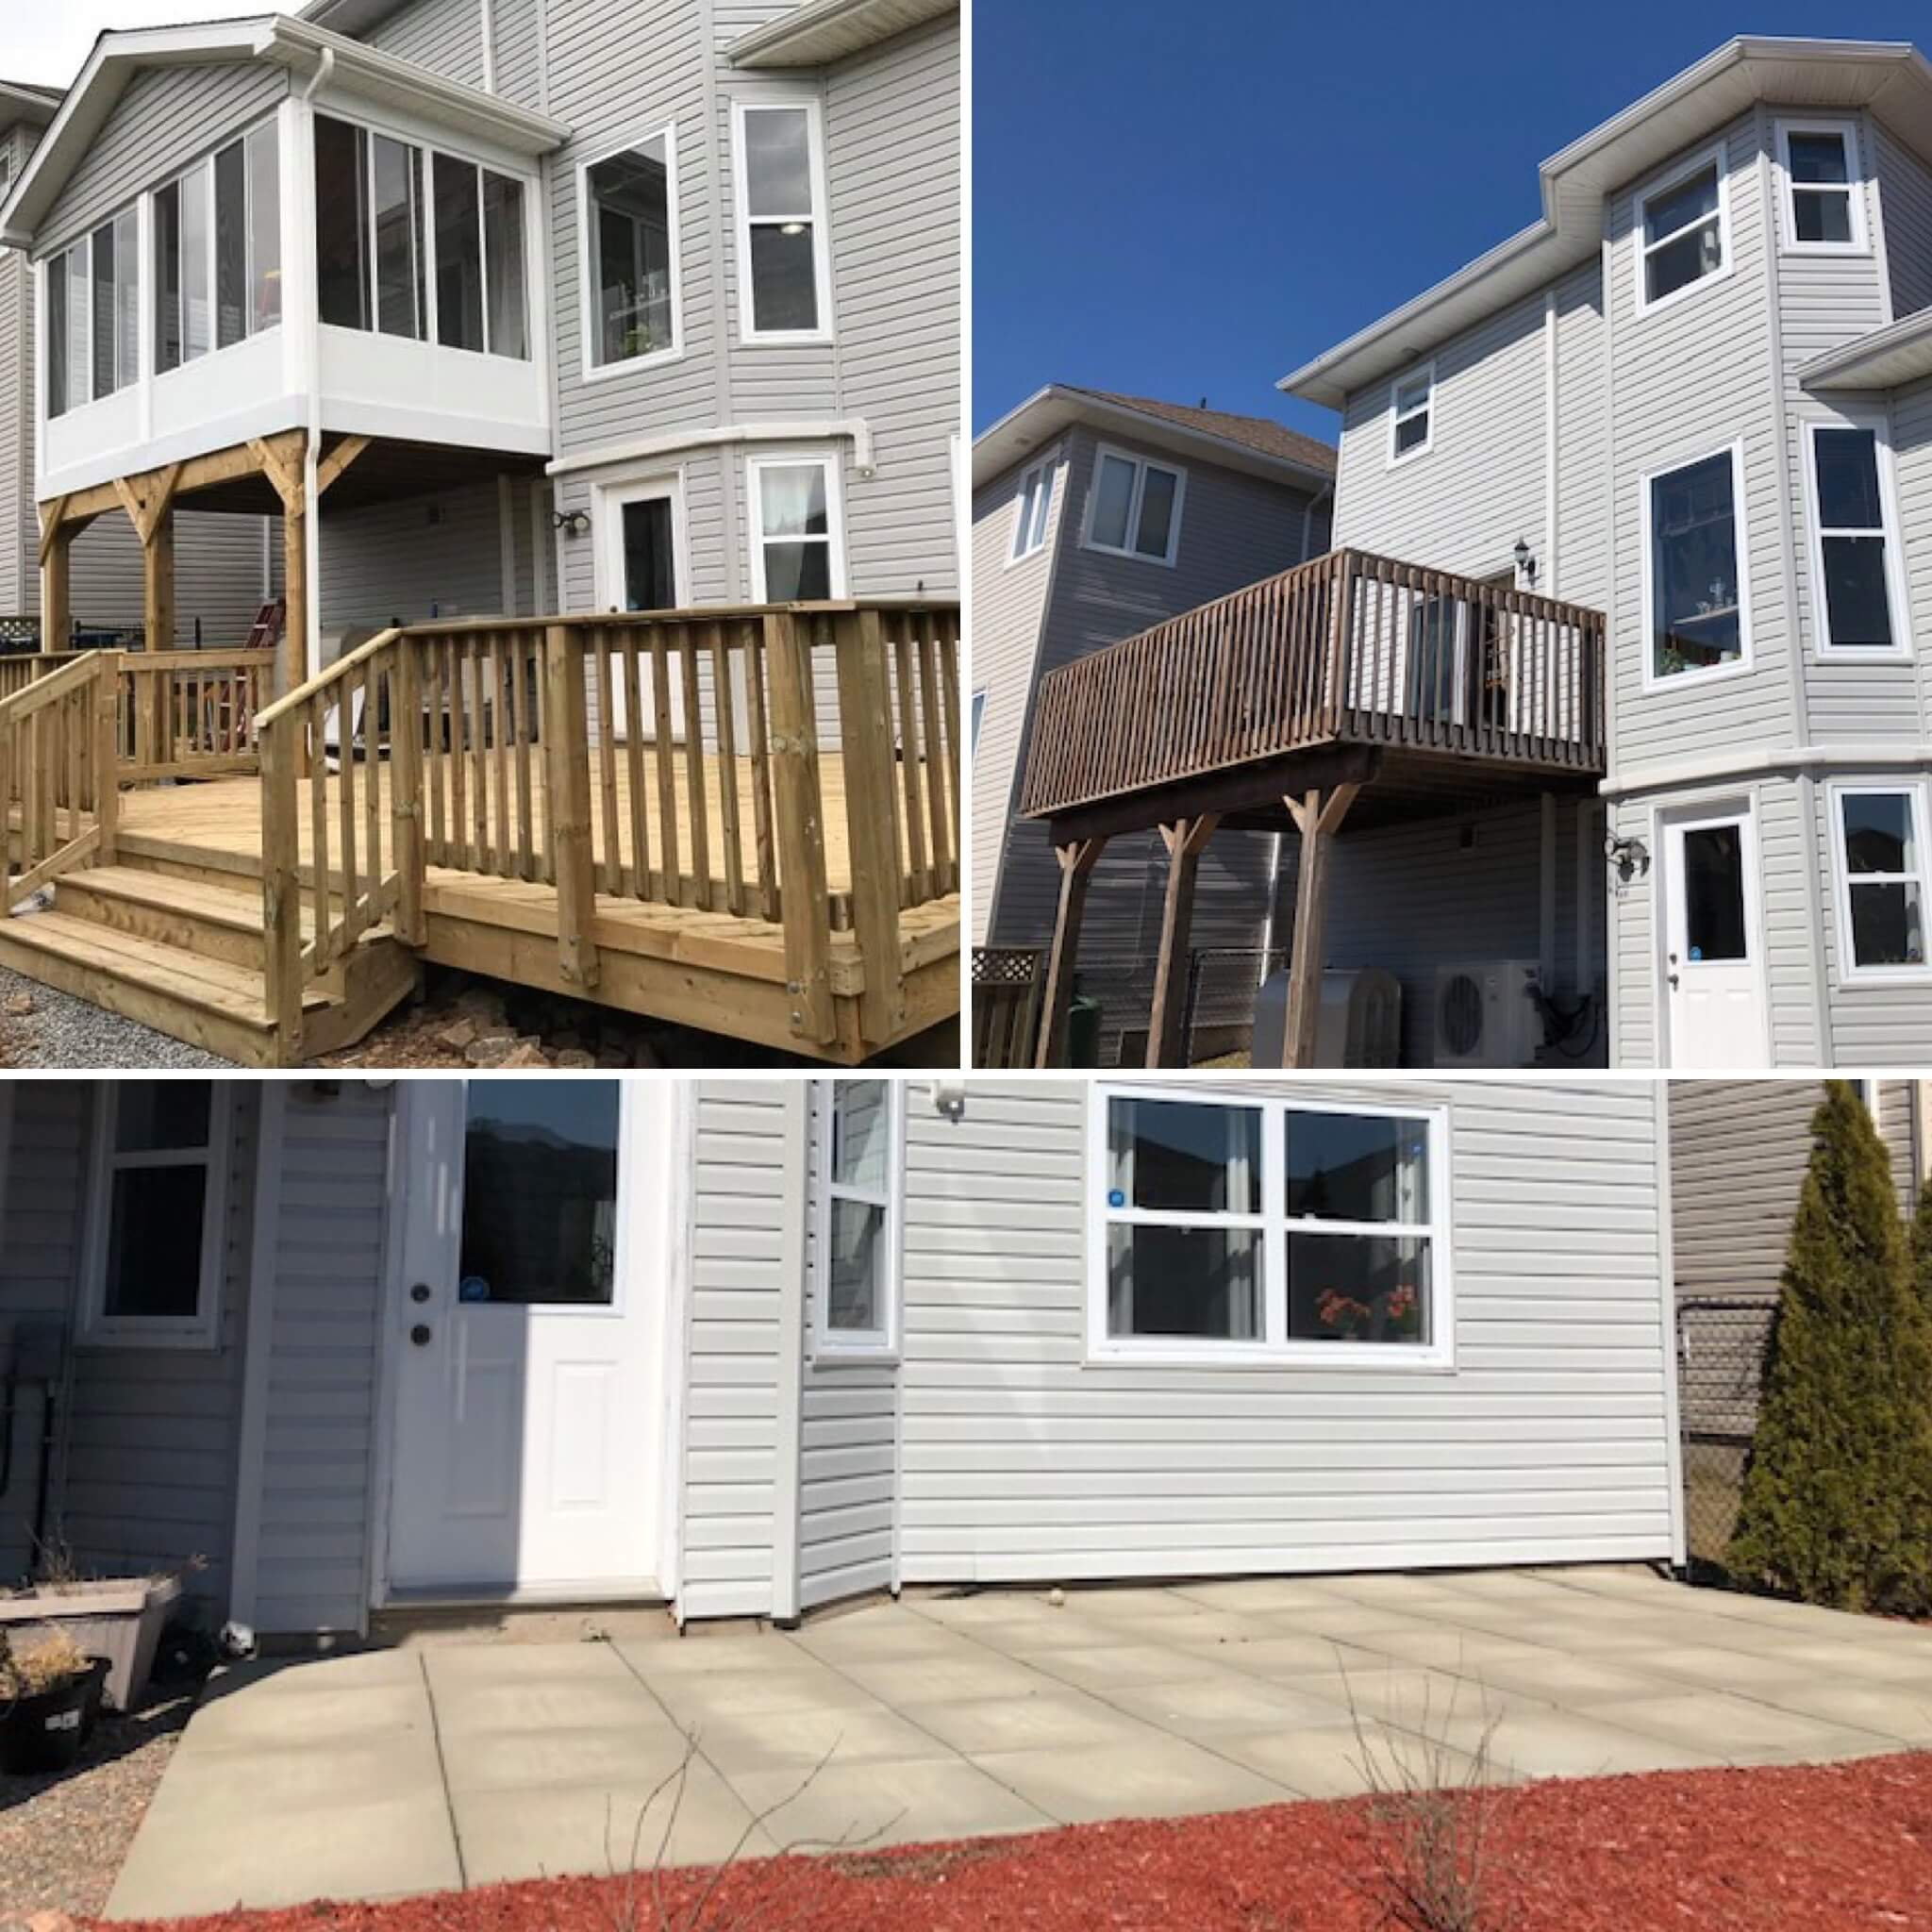 Before and after of a pressure-treated wood deck and sunroom addition